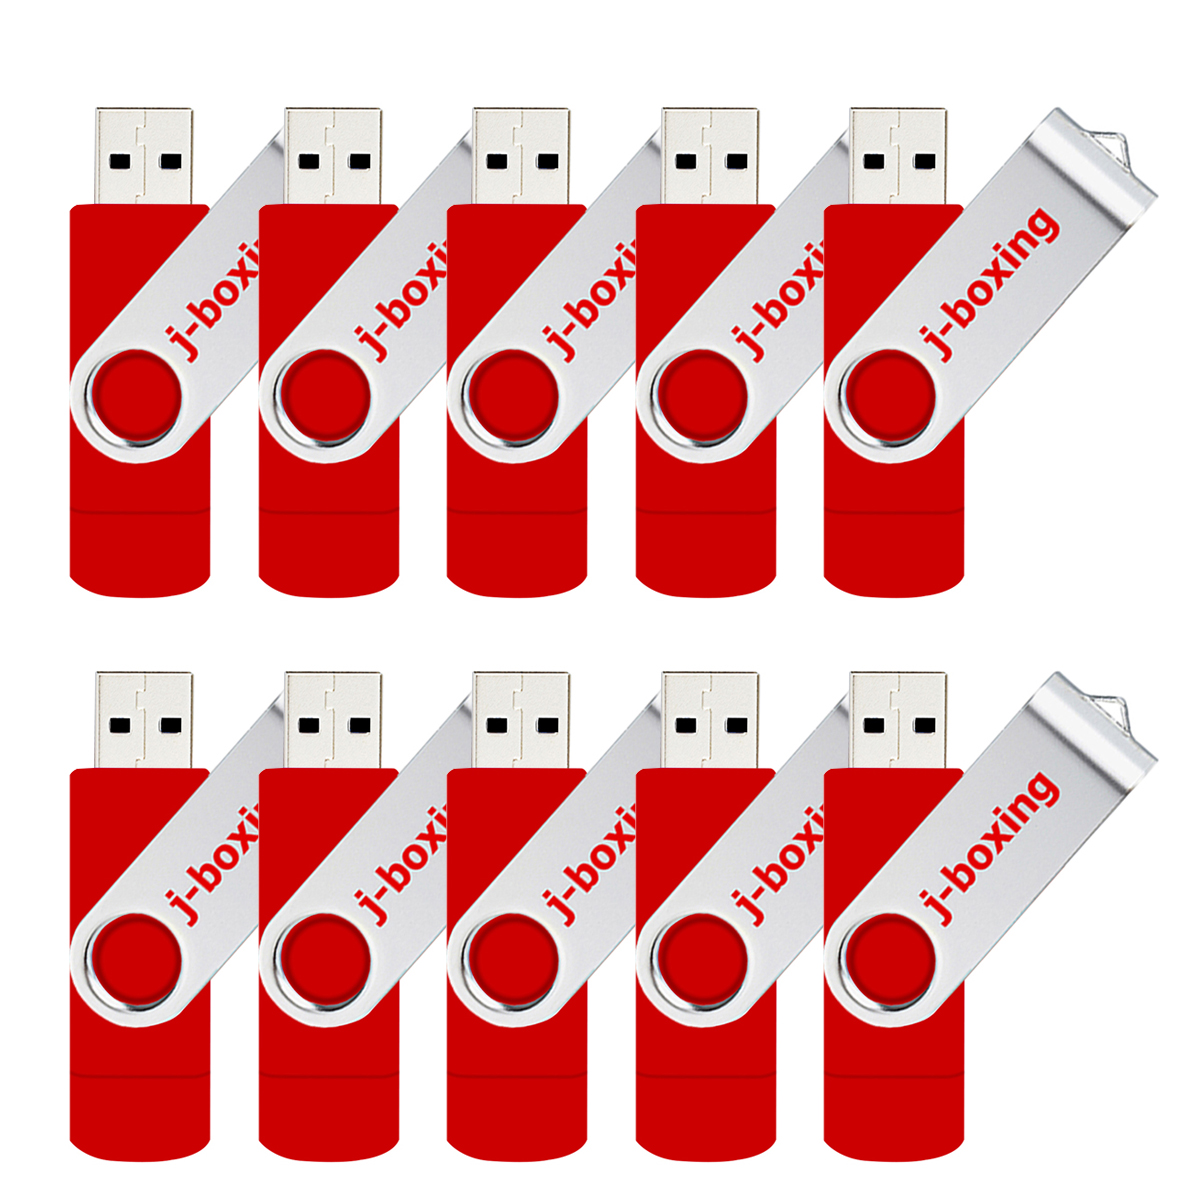 Image 2 - J boxing OTG USB Flash Drive 16GB 32GB Pendrive 128GB 64GB 8GB Swivel Micro USB 2.0 Stick for Android Phone PC 10PCS/Pack-in USB Flash Drives from Computer & Office